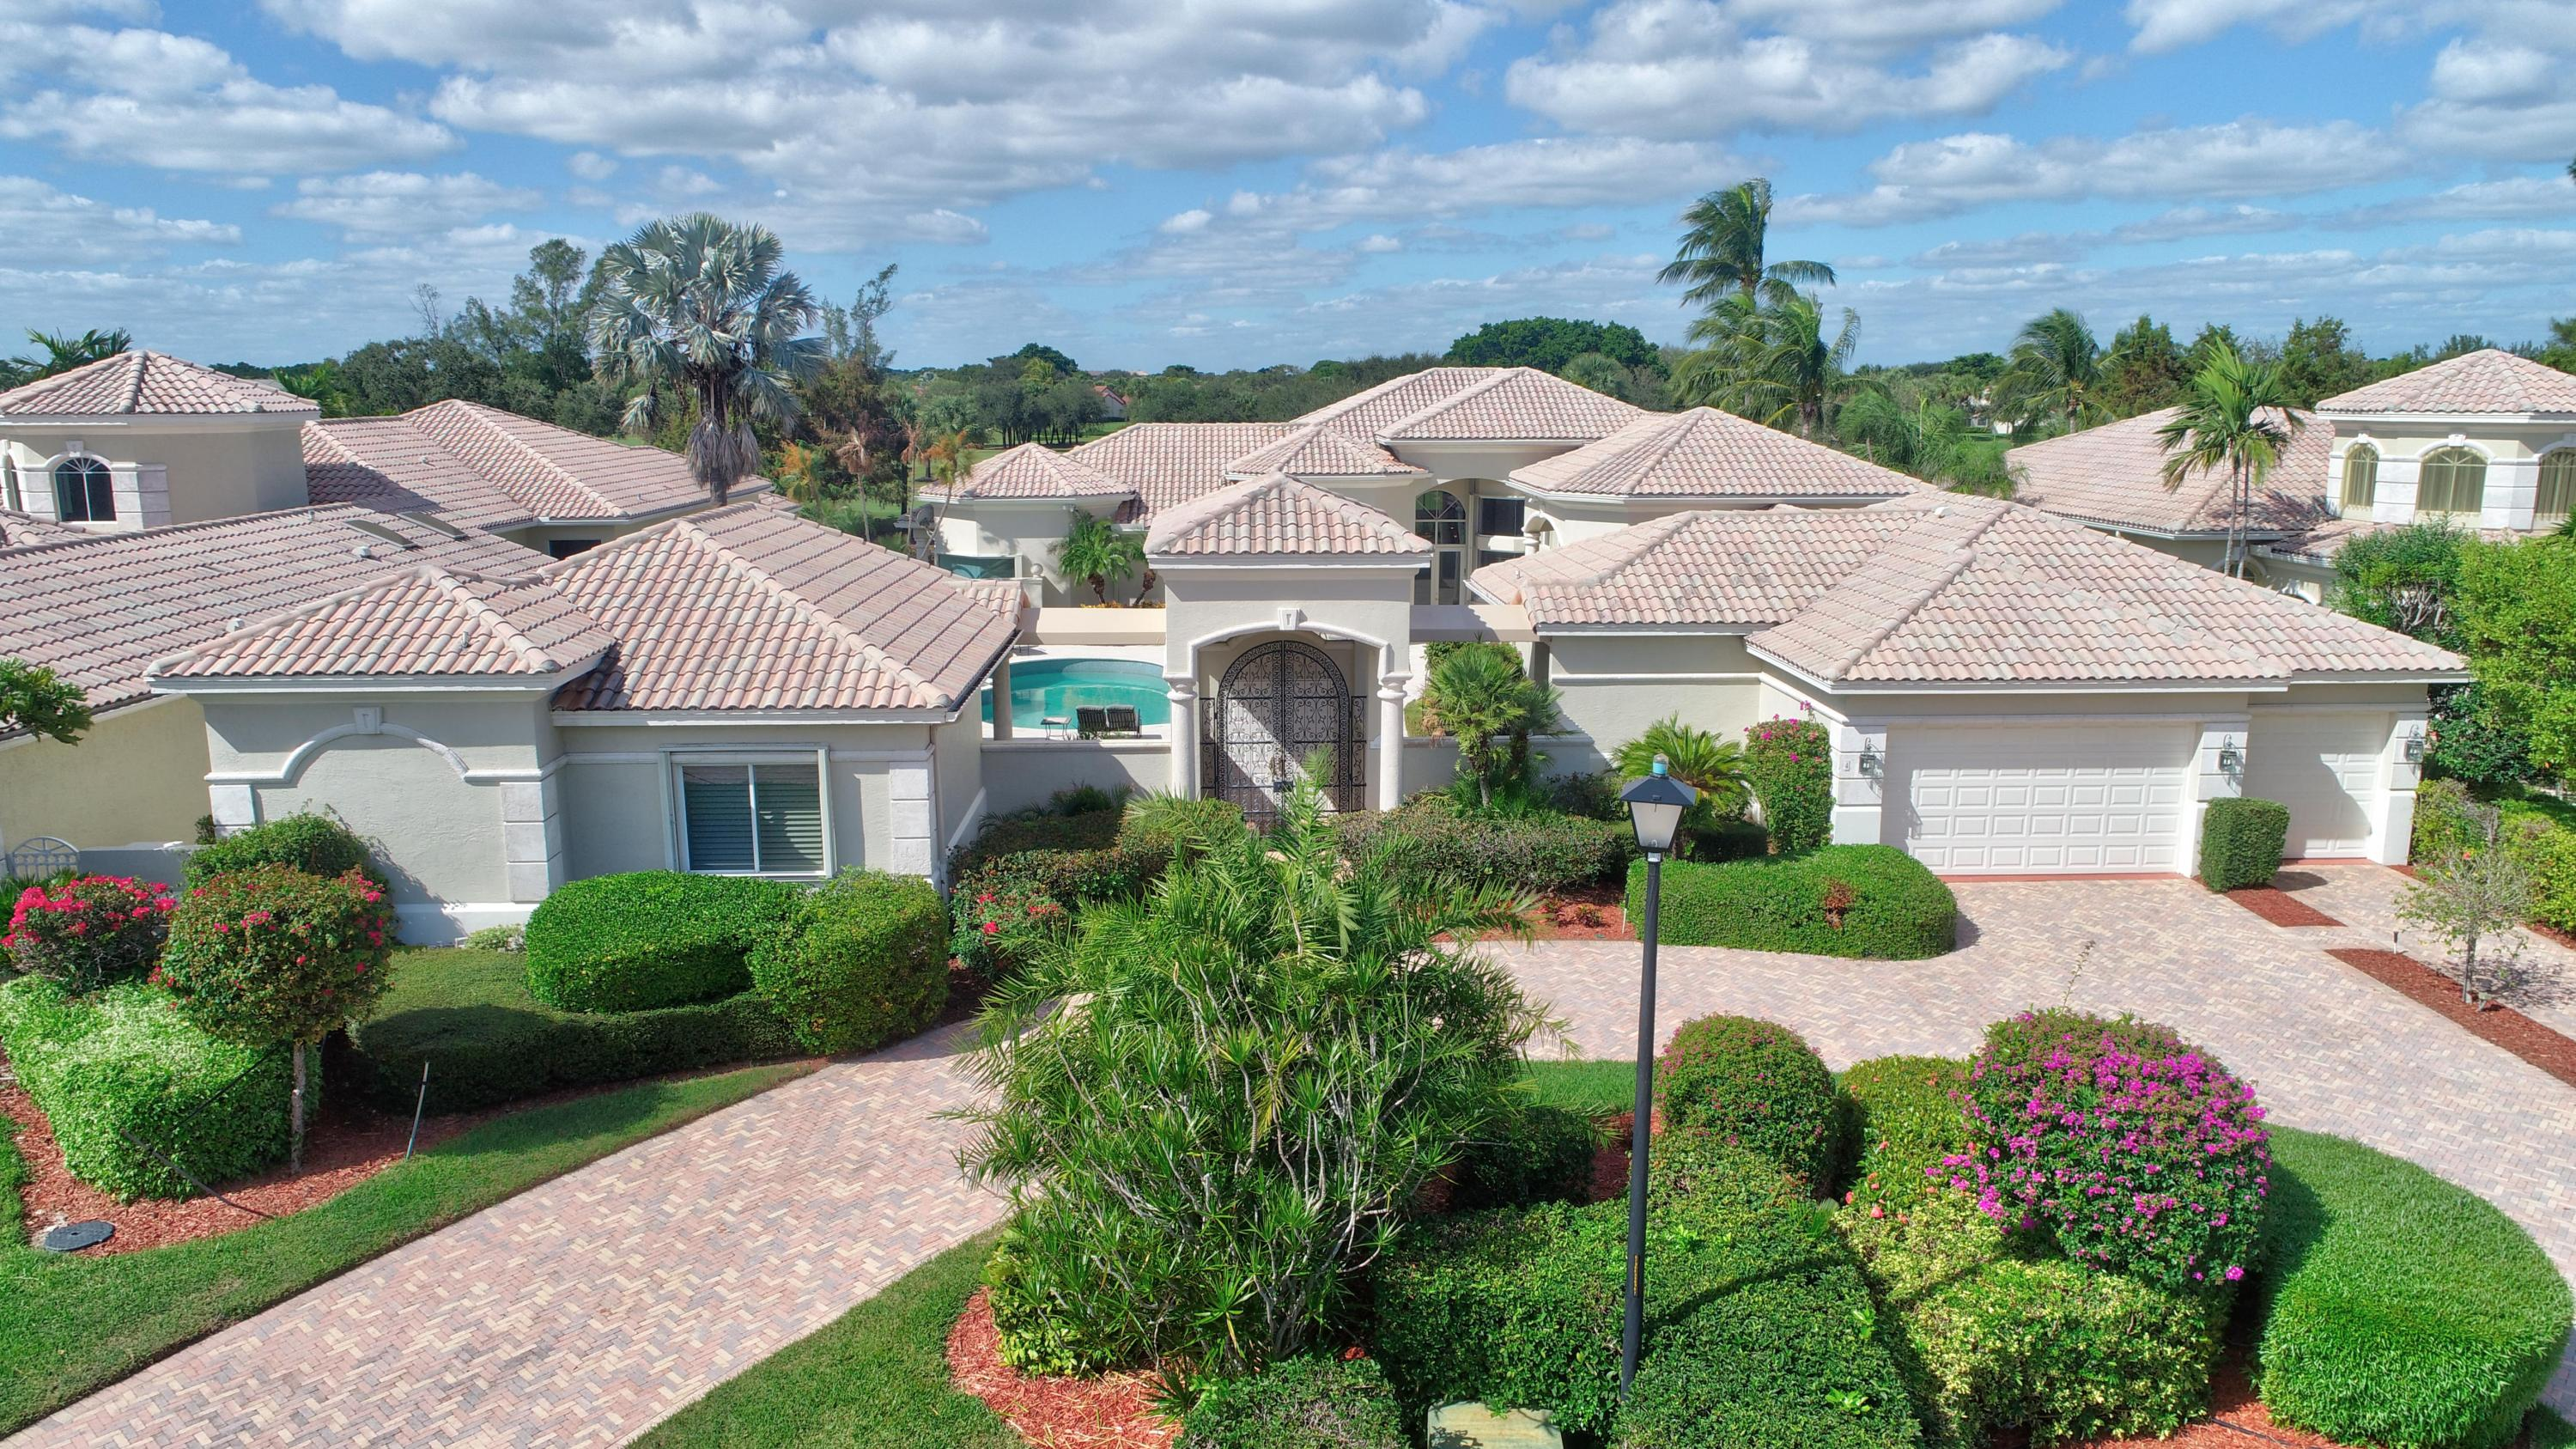 Photo of 4 Island Drive, Boynton Beach, FL 33436